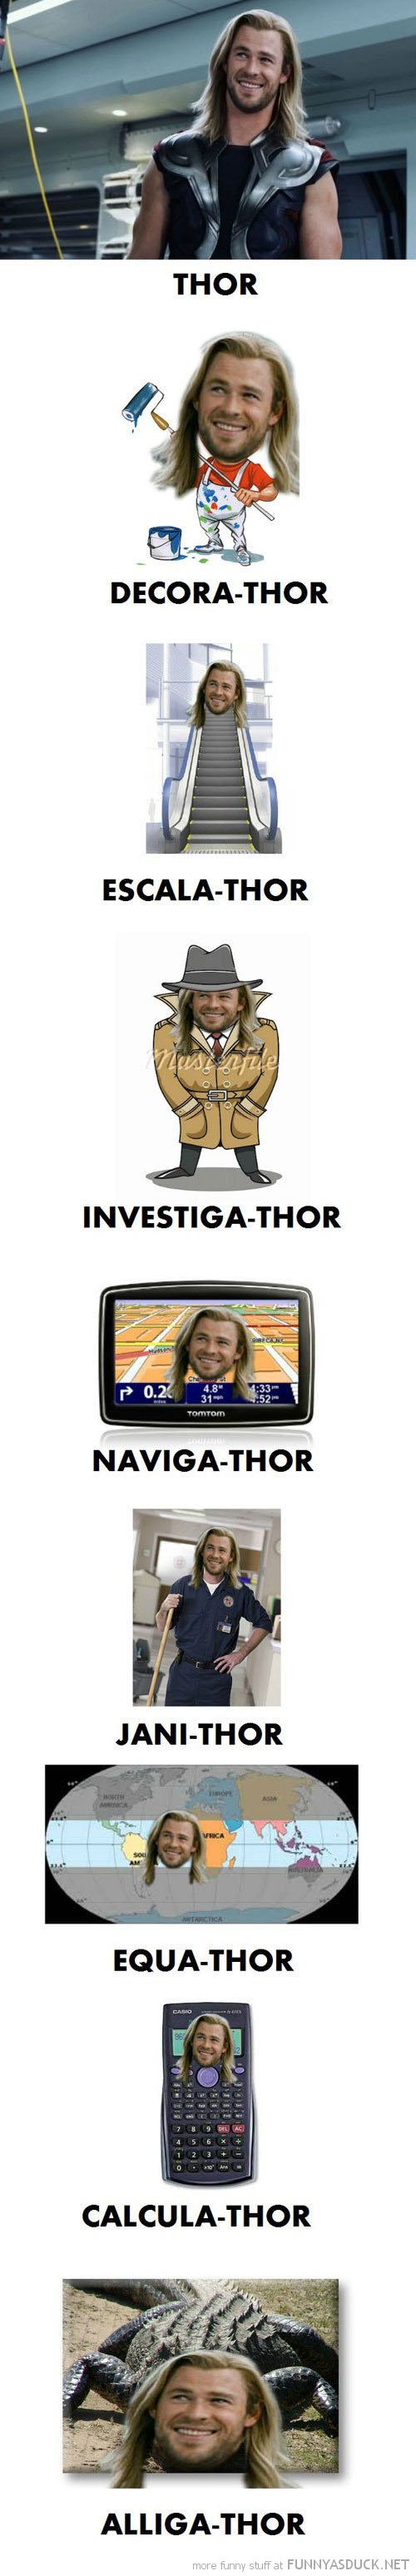 thor play on words avengers  film movie funny pics pictures pic picture image photo images photos lol